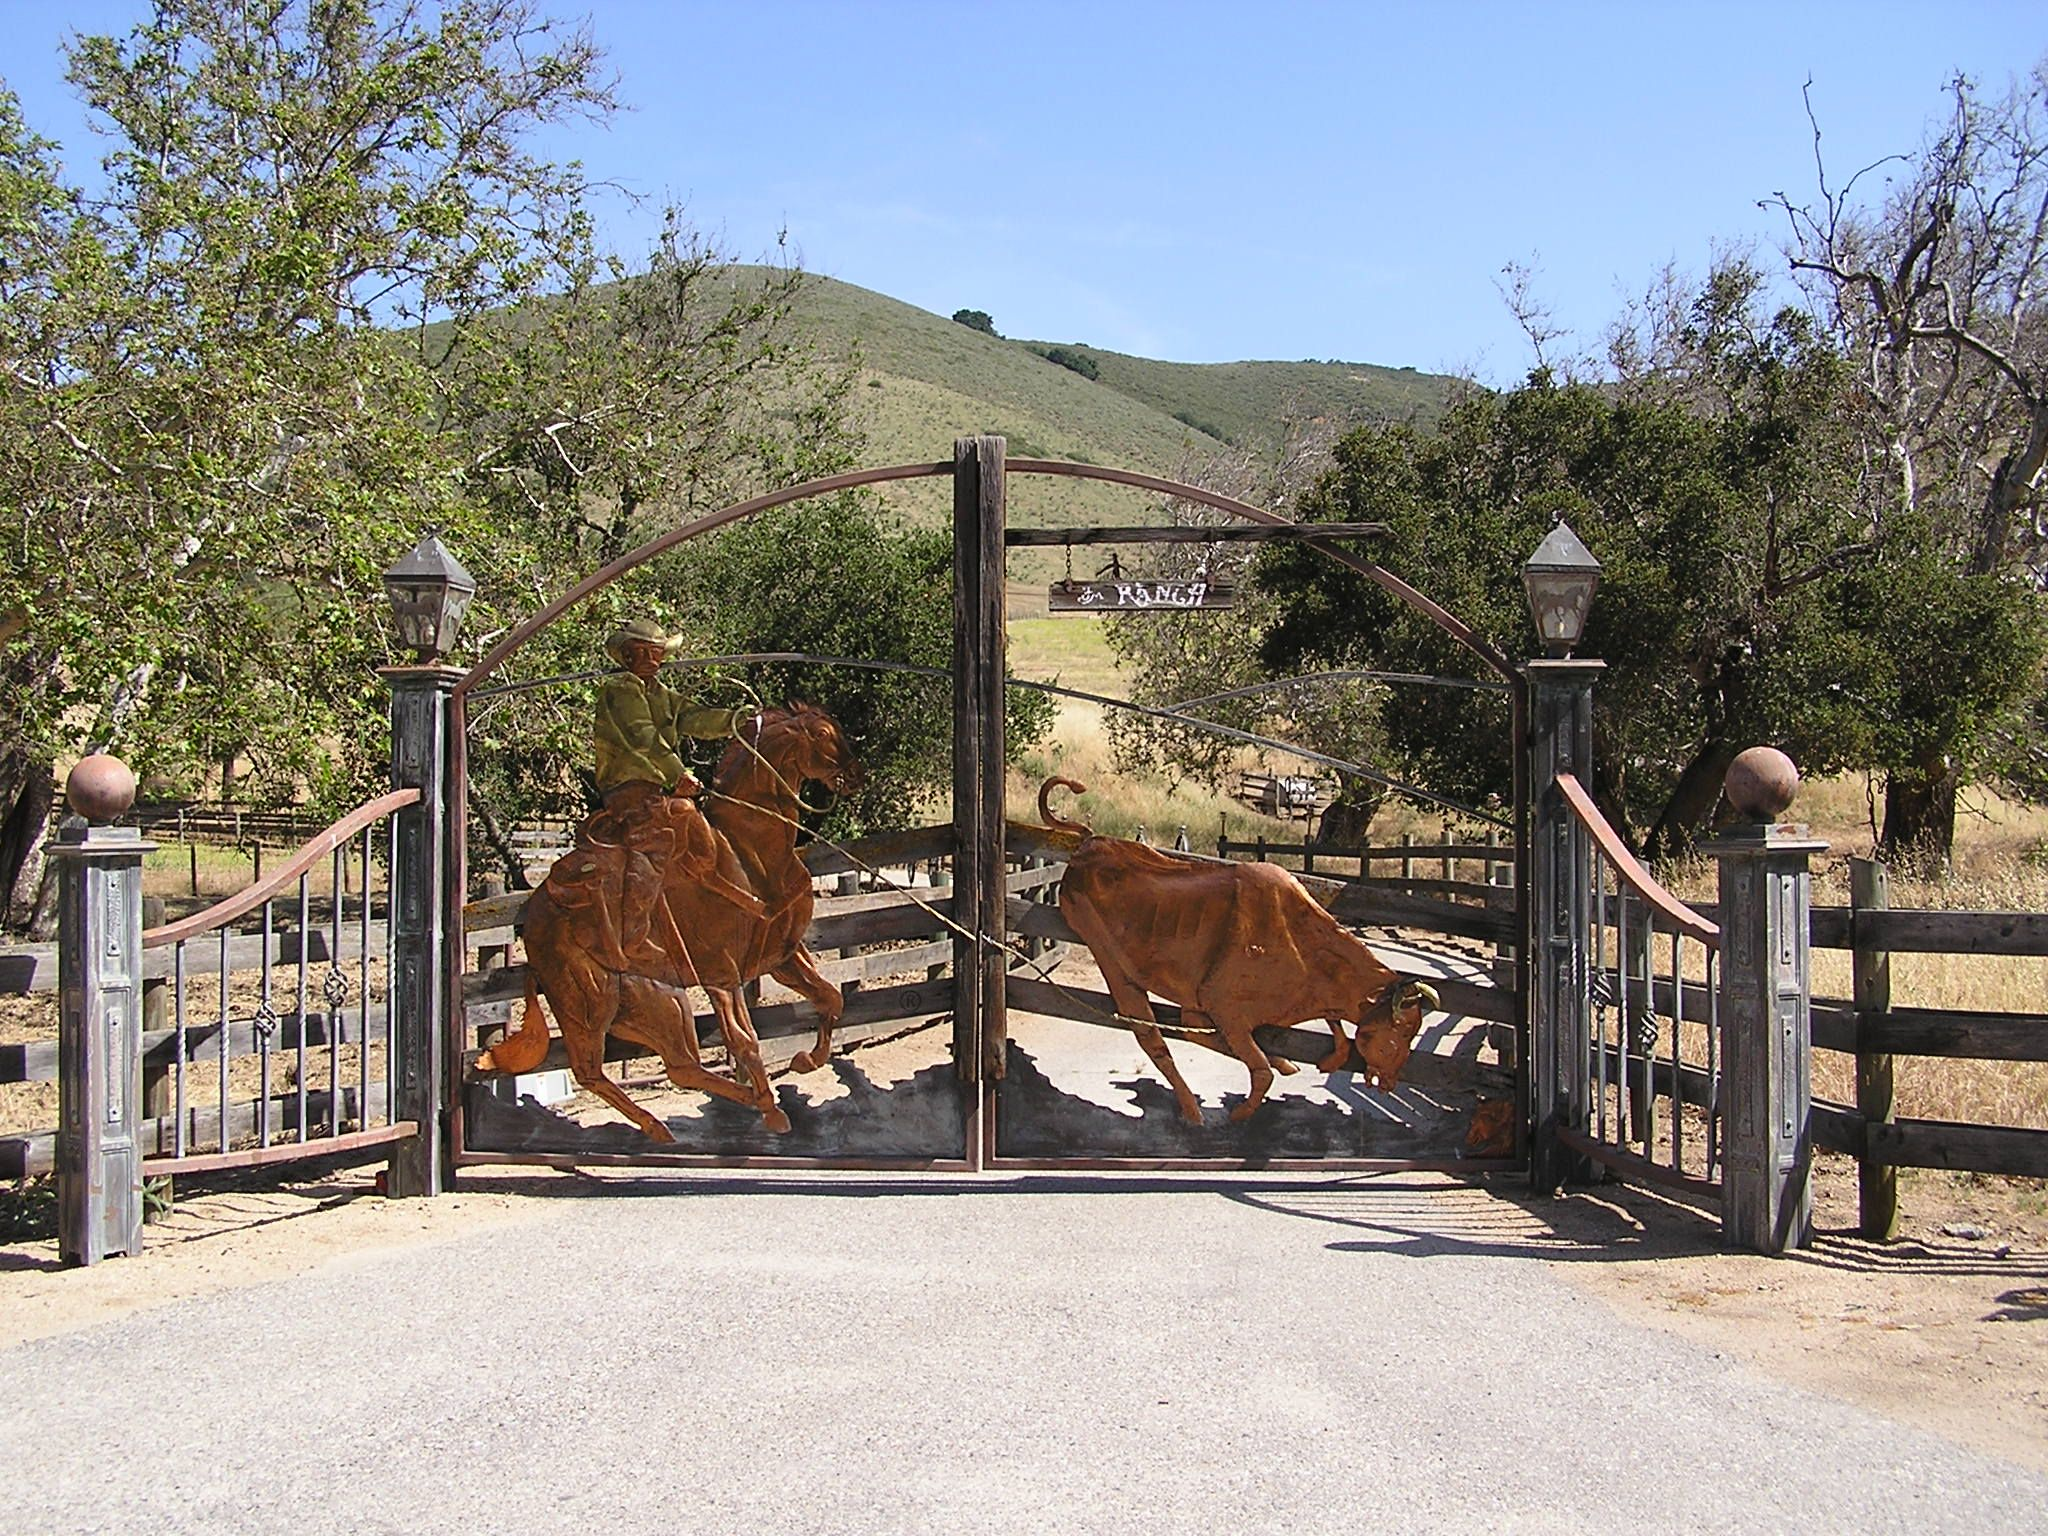 Cool entrance gate farm ranch decor pinterest for Ranch entrance designs